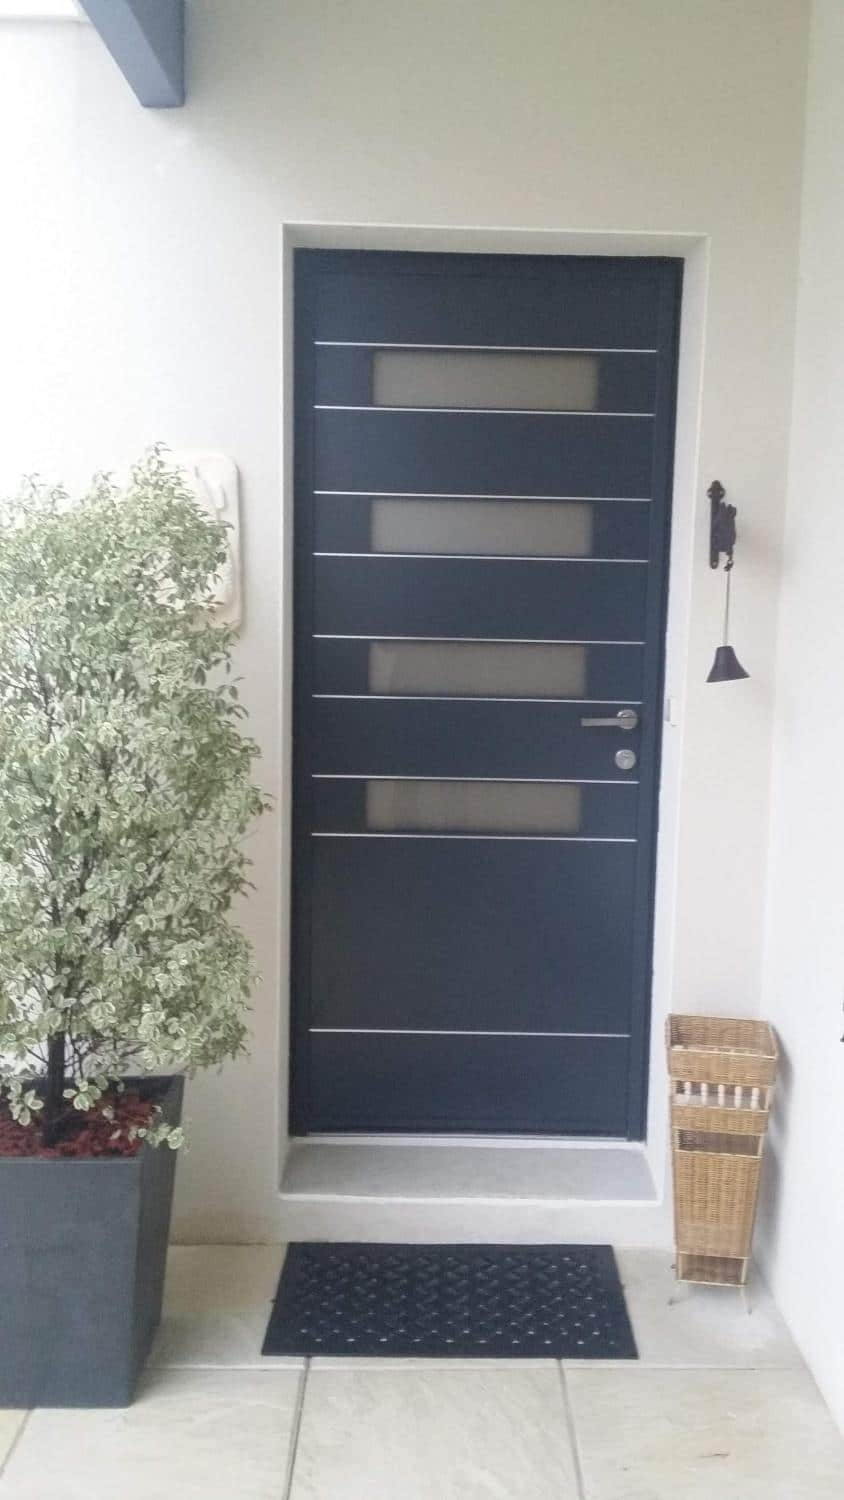 porte d 39 entr e alu anthracite pos e saint nazaire sur charente. Black Bedroom Furniture Sets. Home Design Ideas